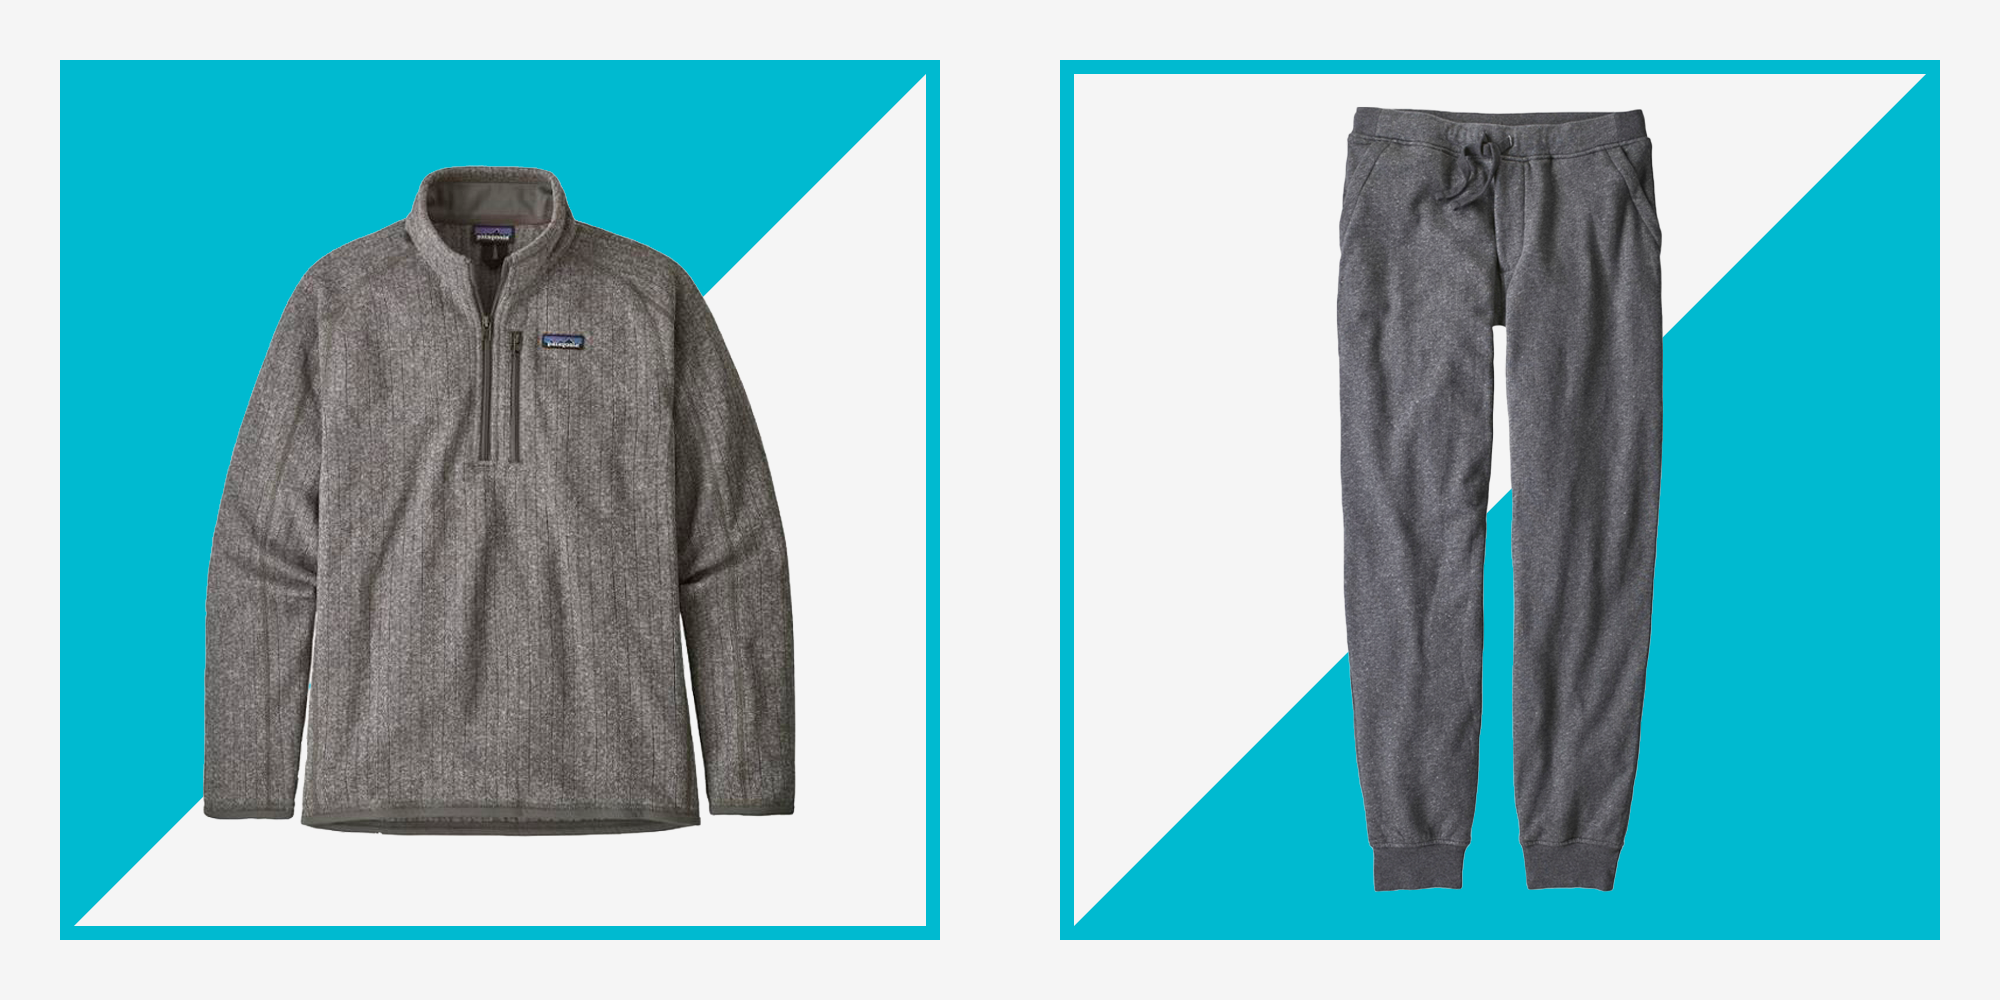 10 Great Deals on Apparel From REI's 25% off Sale